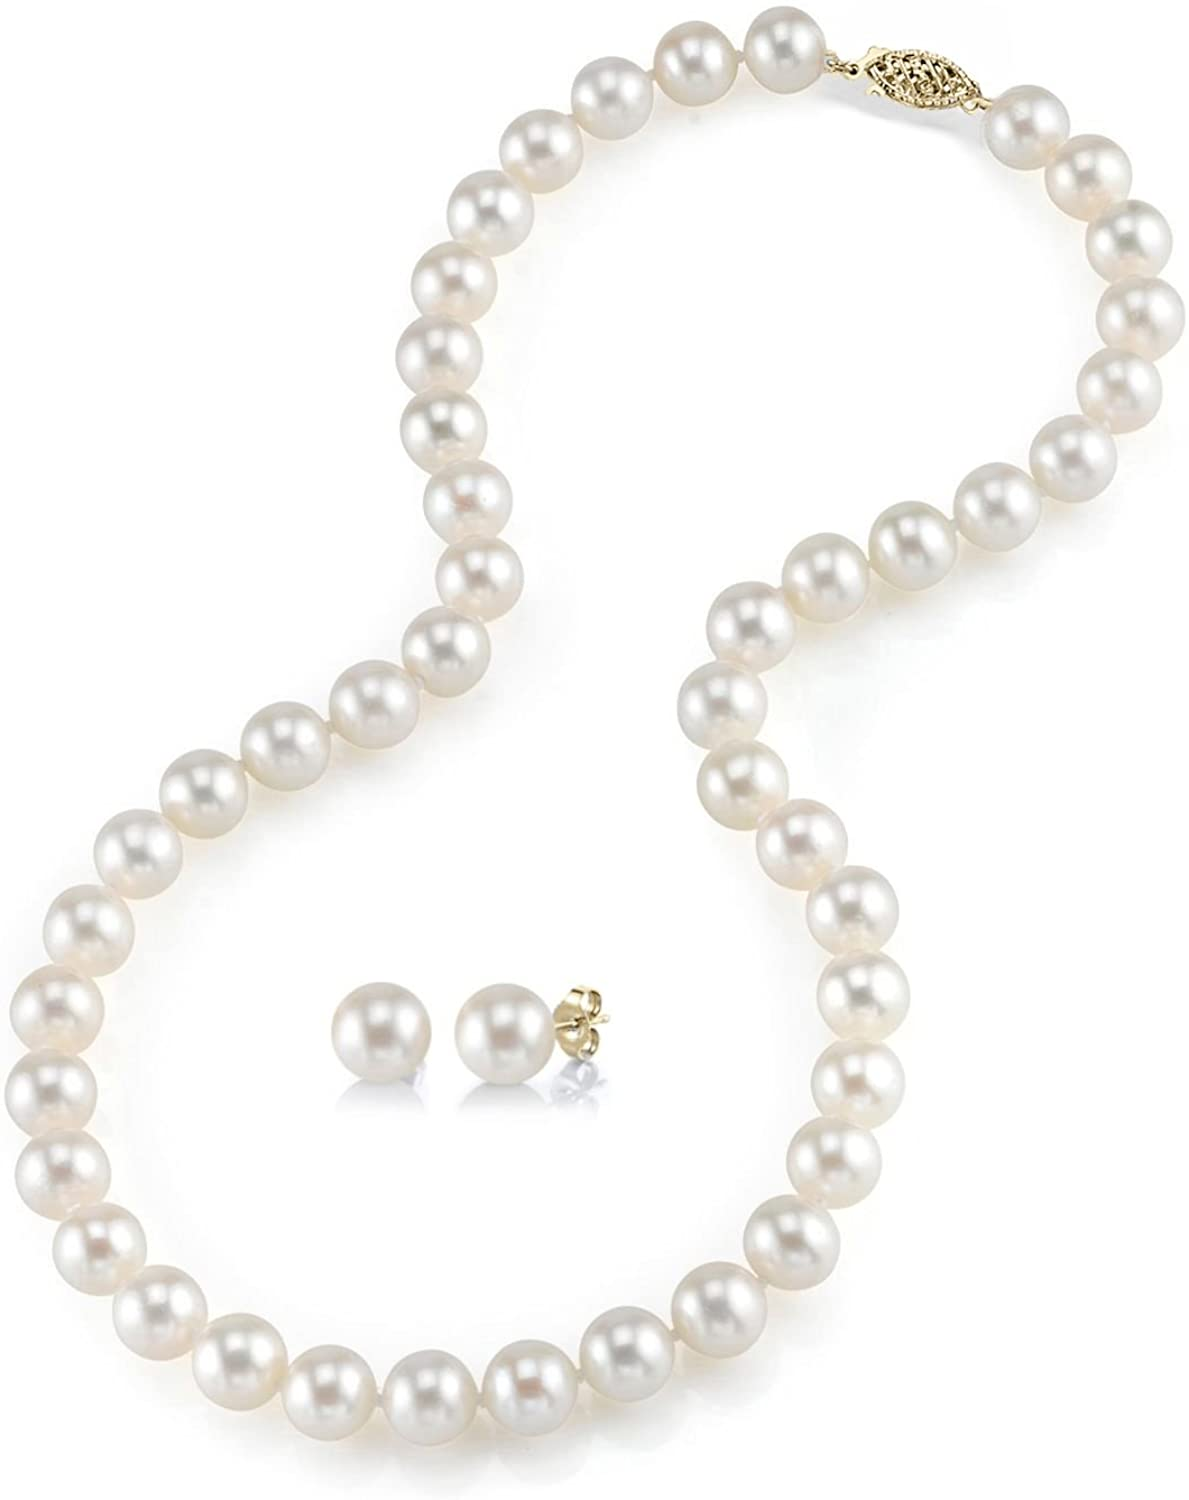 THE PEARL SOURCE 14K Gold 7-8mm Round White Freshwater Cultured Pearl Necklace & Earrings Set in 16